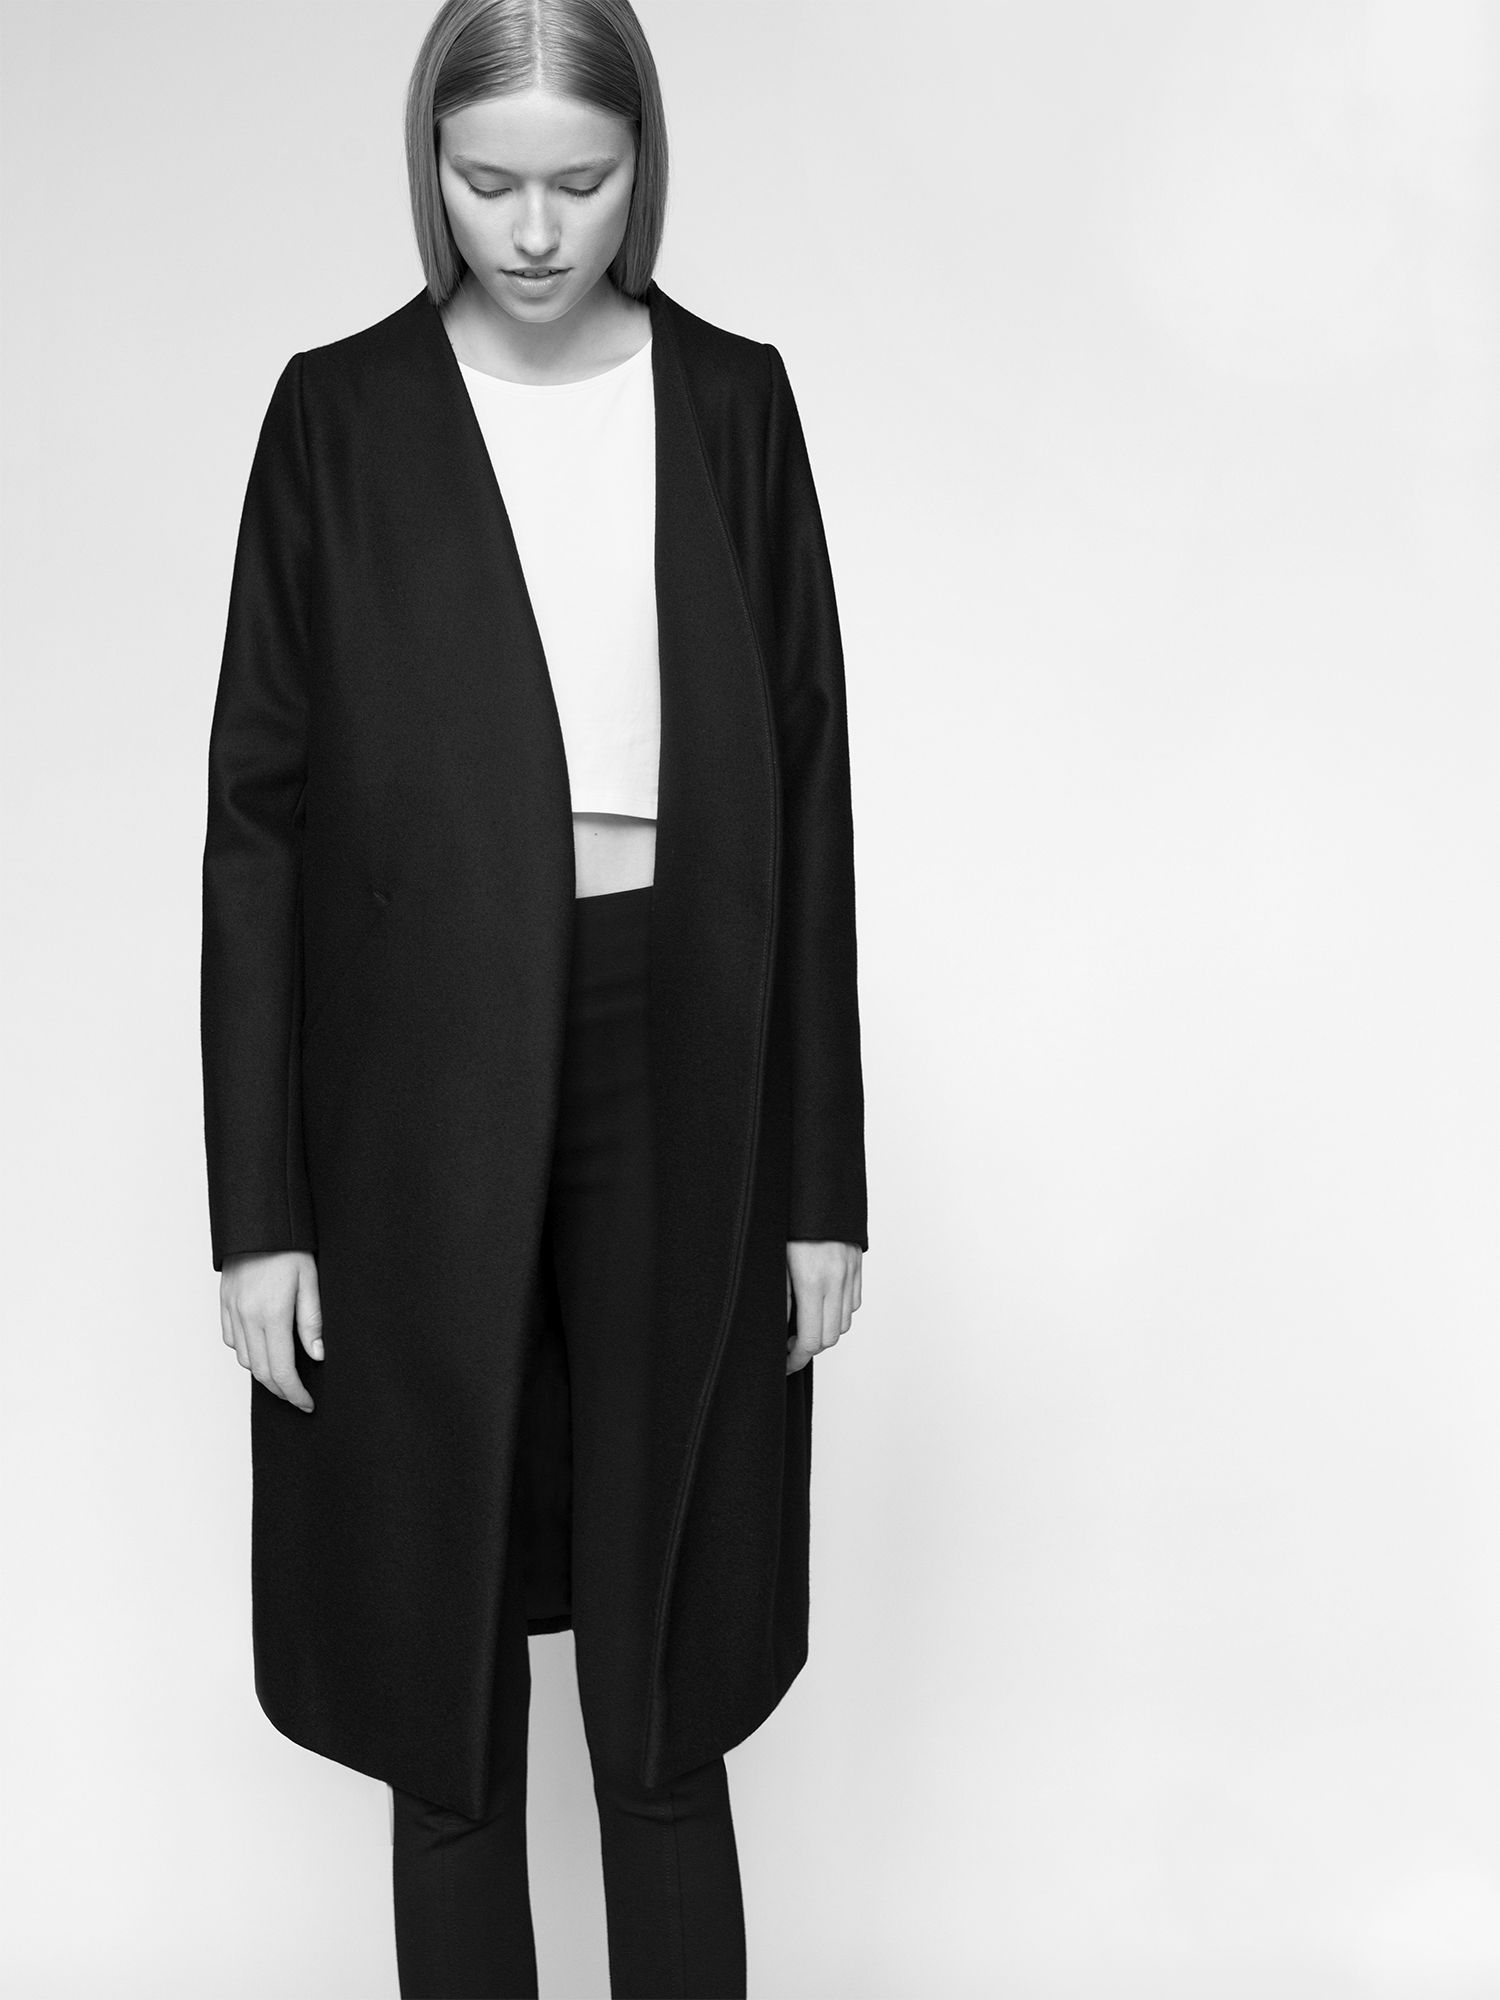 NON coat 100% finest merino wool fabric. Photographed by Kasia Bielska. thisisnon.com